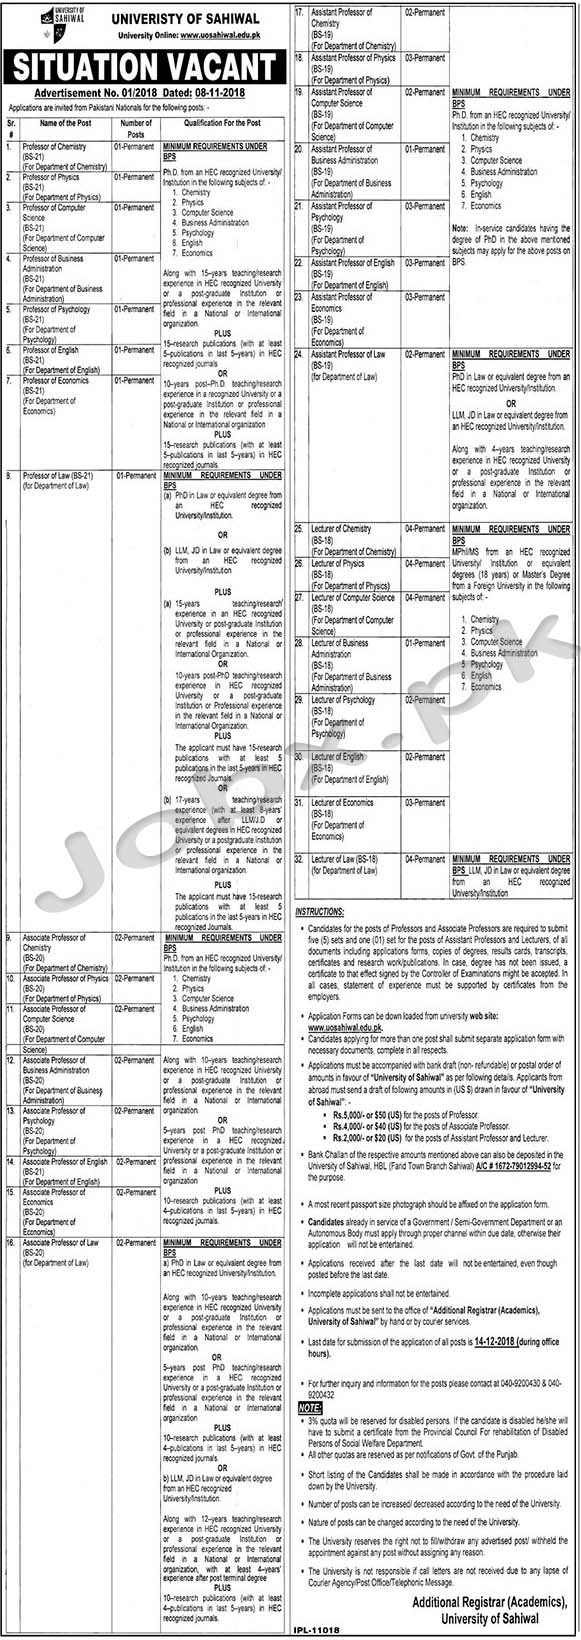 University of Sahiwal Announced 67 Vacancies